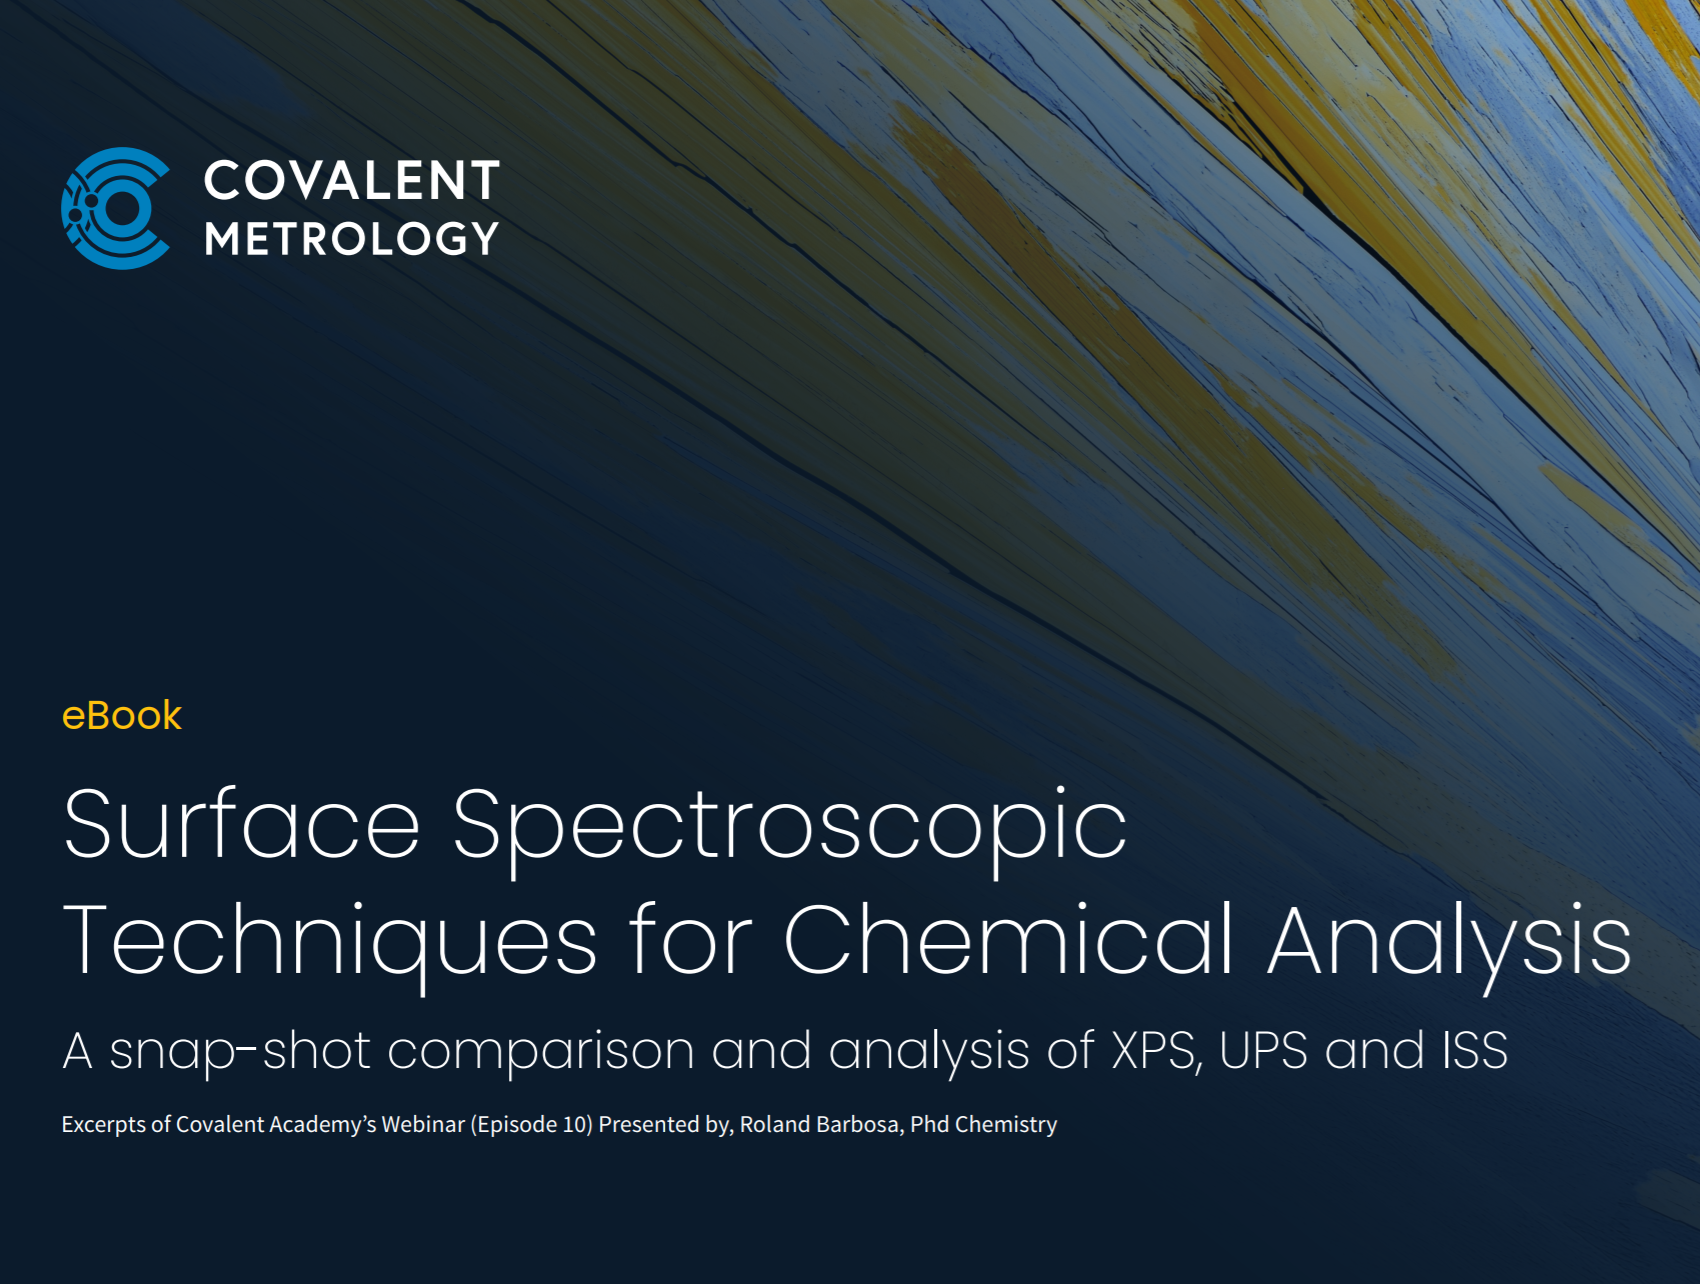 E-Book: Surface Spectroscopic Techniques for Chemical Analysis